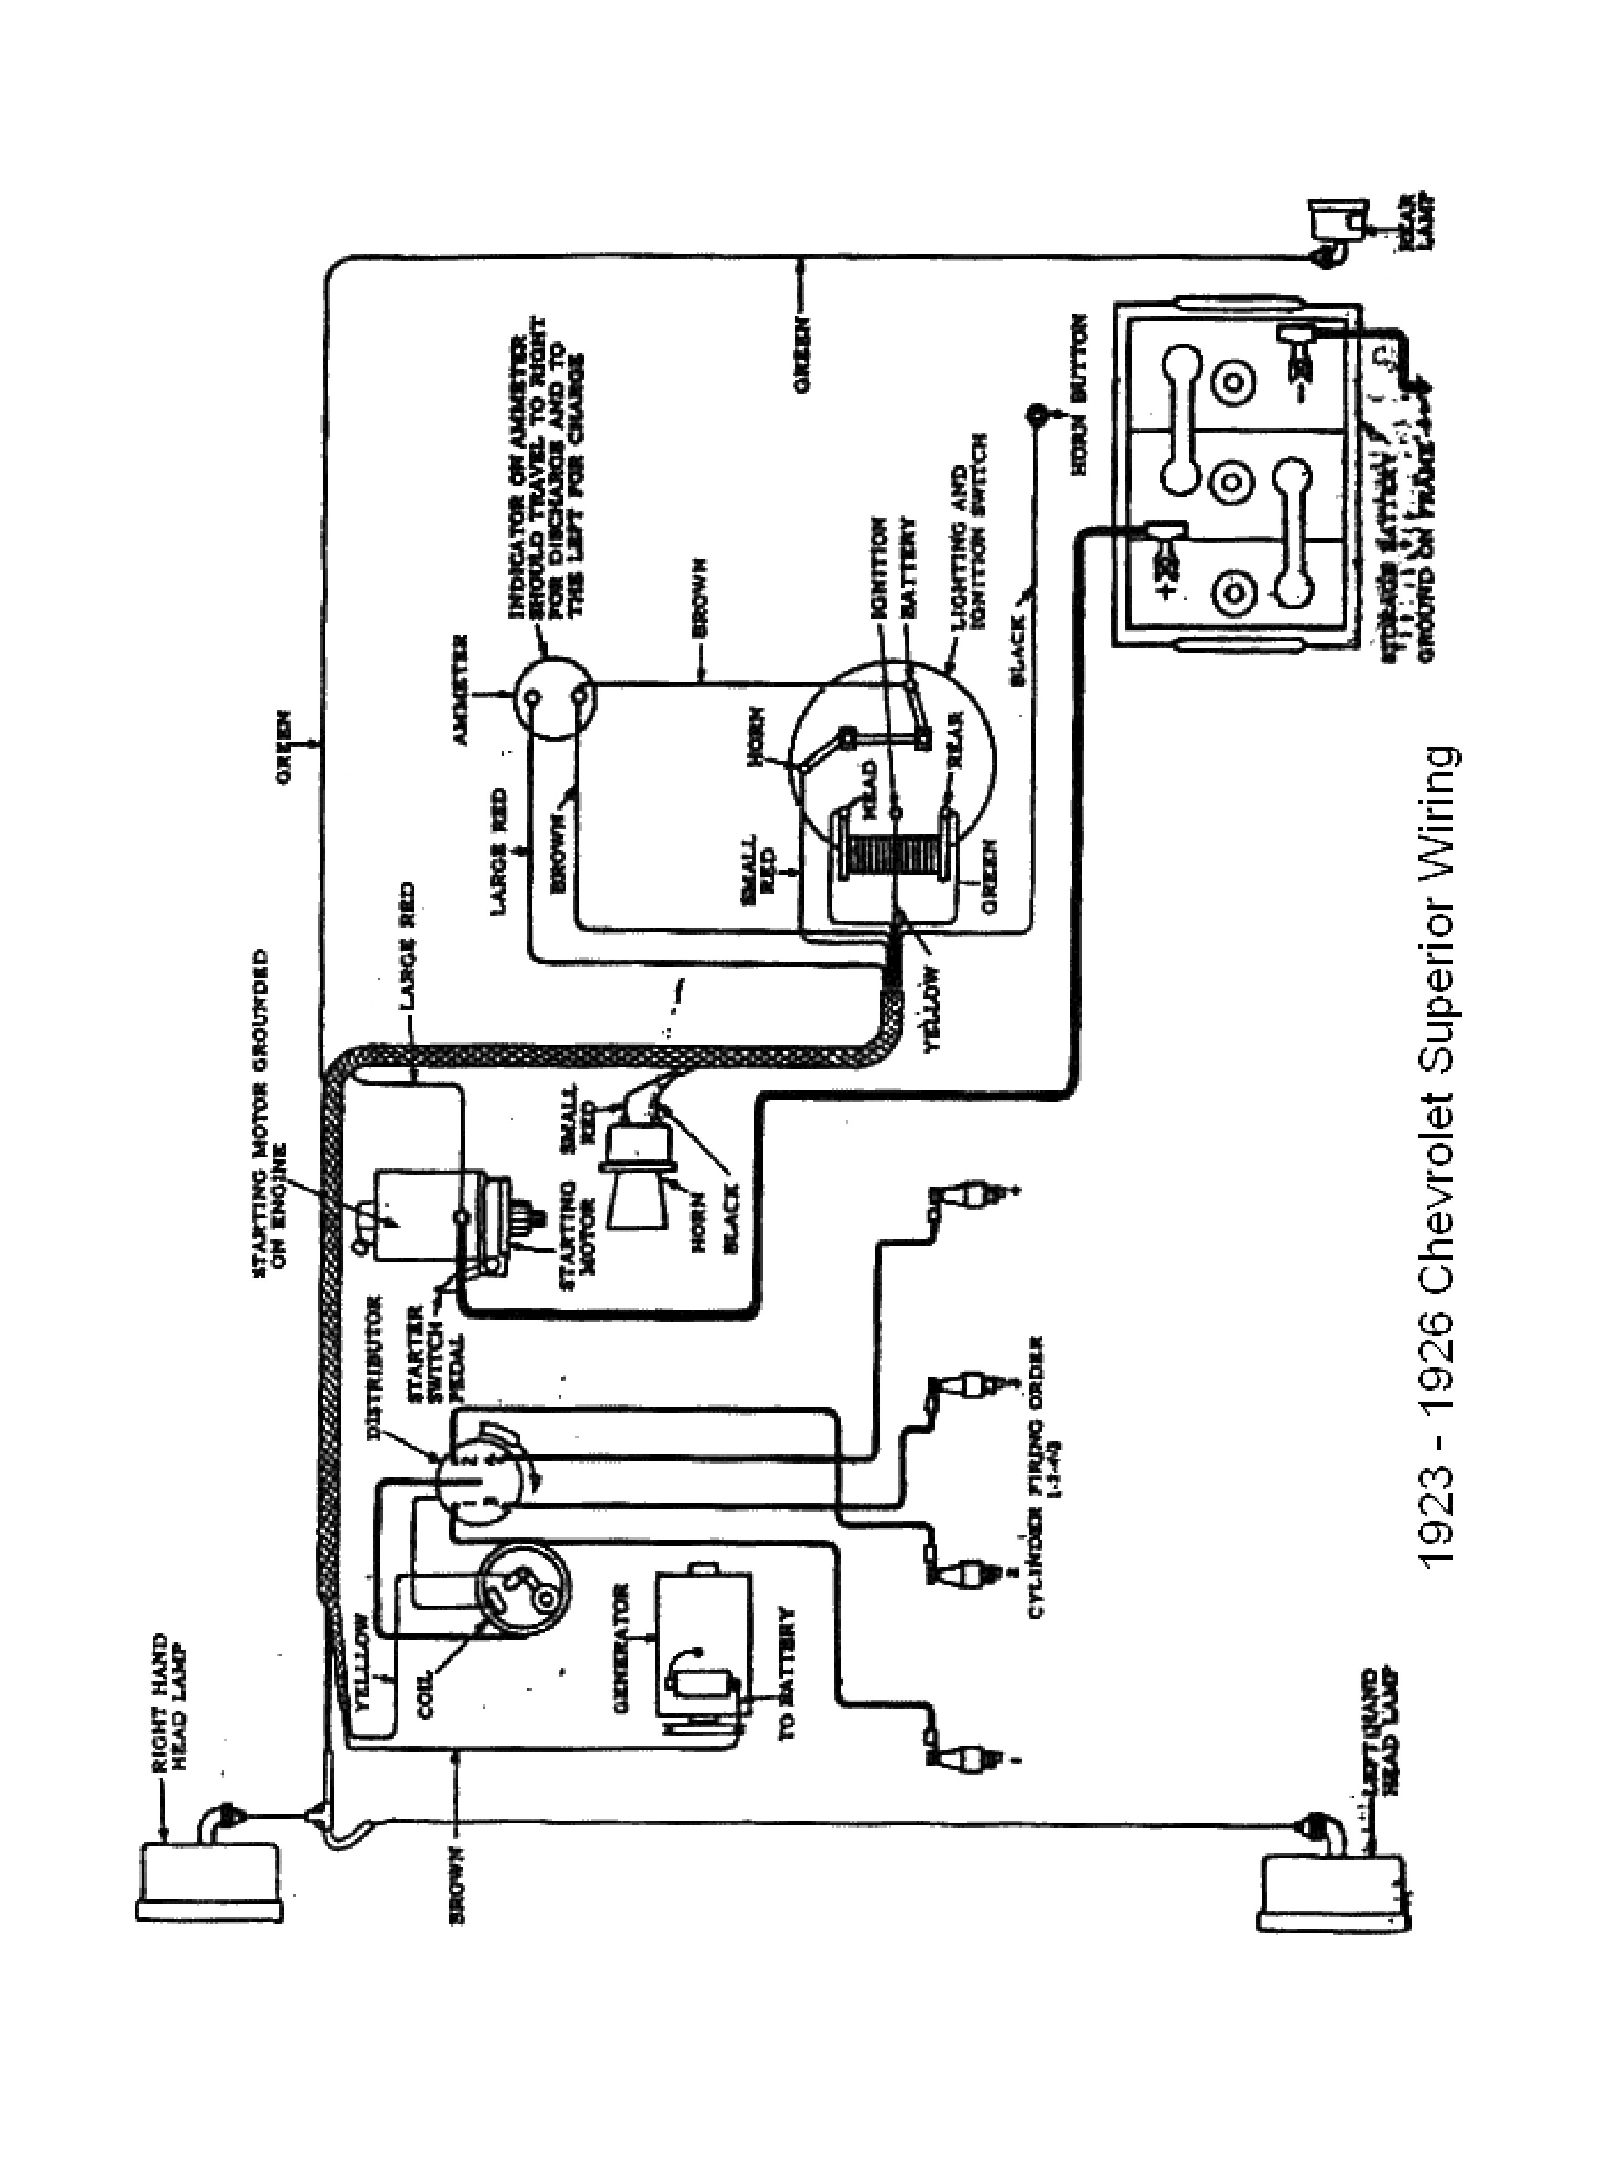 hight resolution of 1955 willy jeep wiring schematic wiring diagram database1949 chevrolet wiring diagram wiring diagram database 2003 jeep